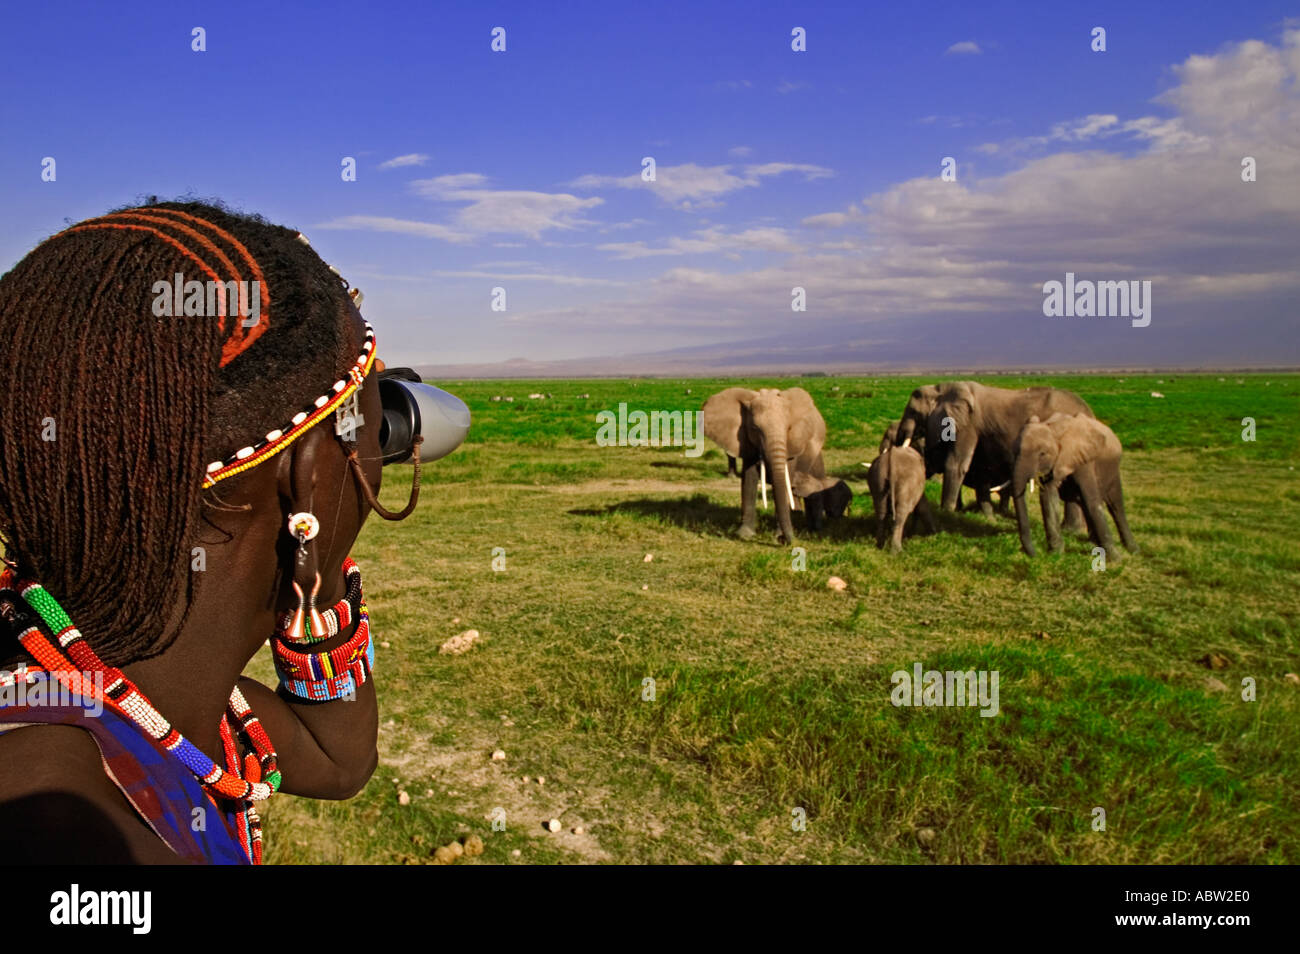 Maasai people Maasai guide in vehicle looking at elephant Model released Near Amboseli National Park Kenya - Stock Image